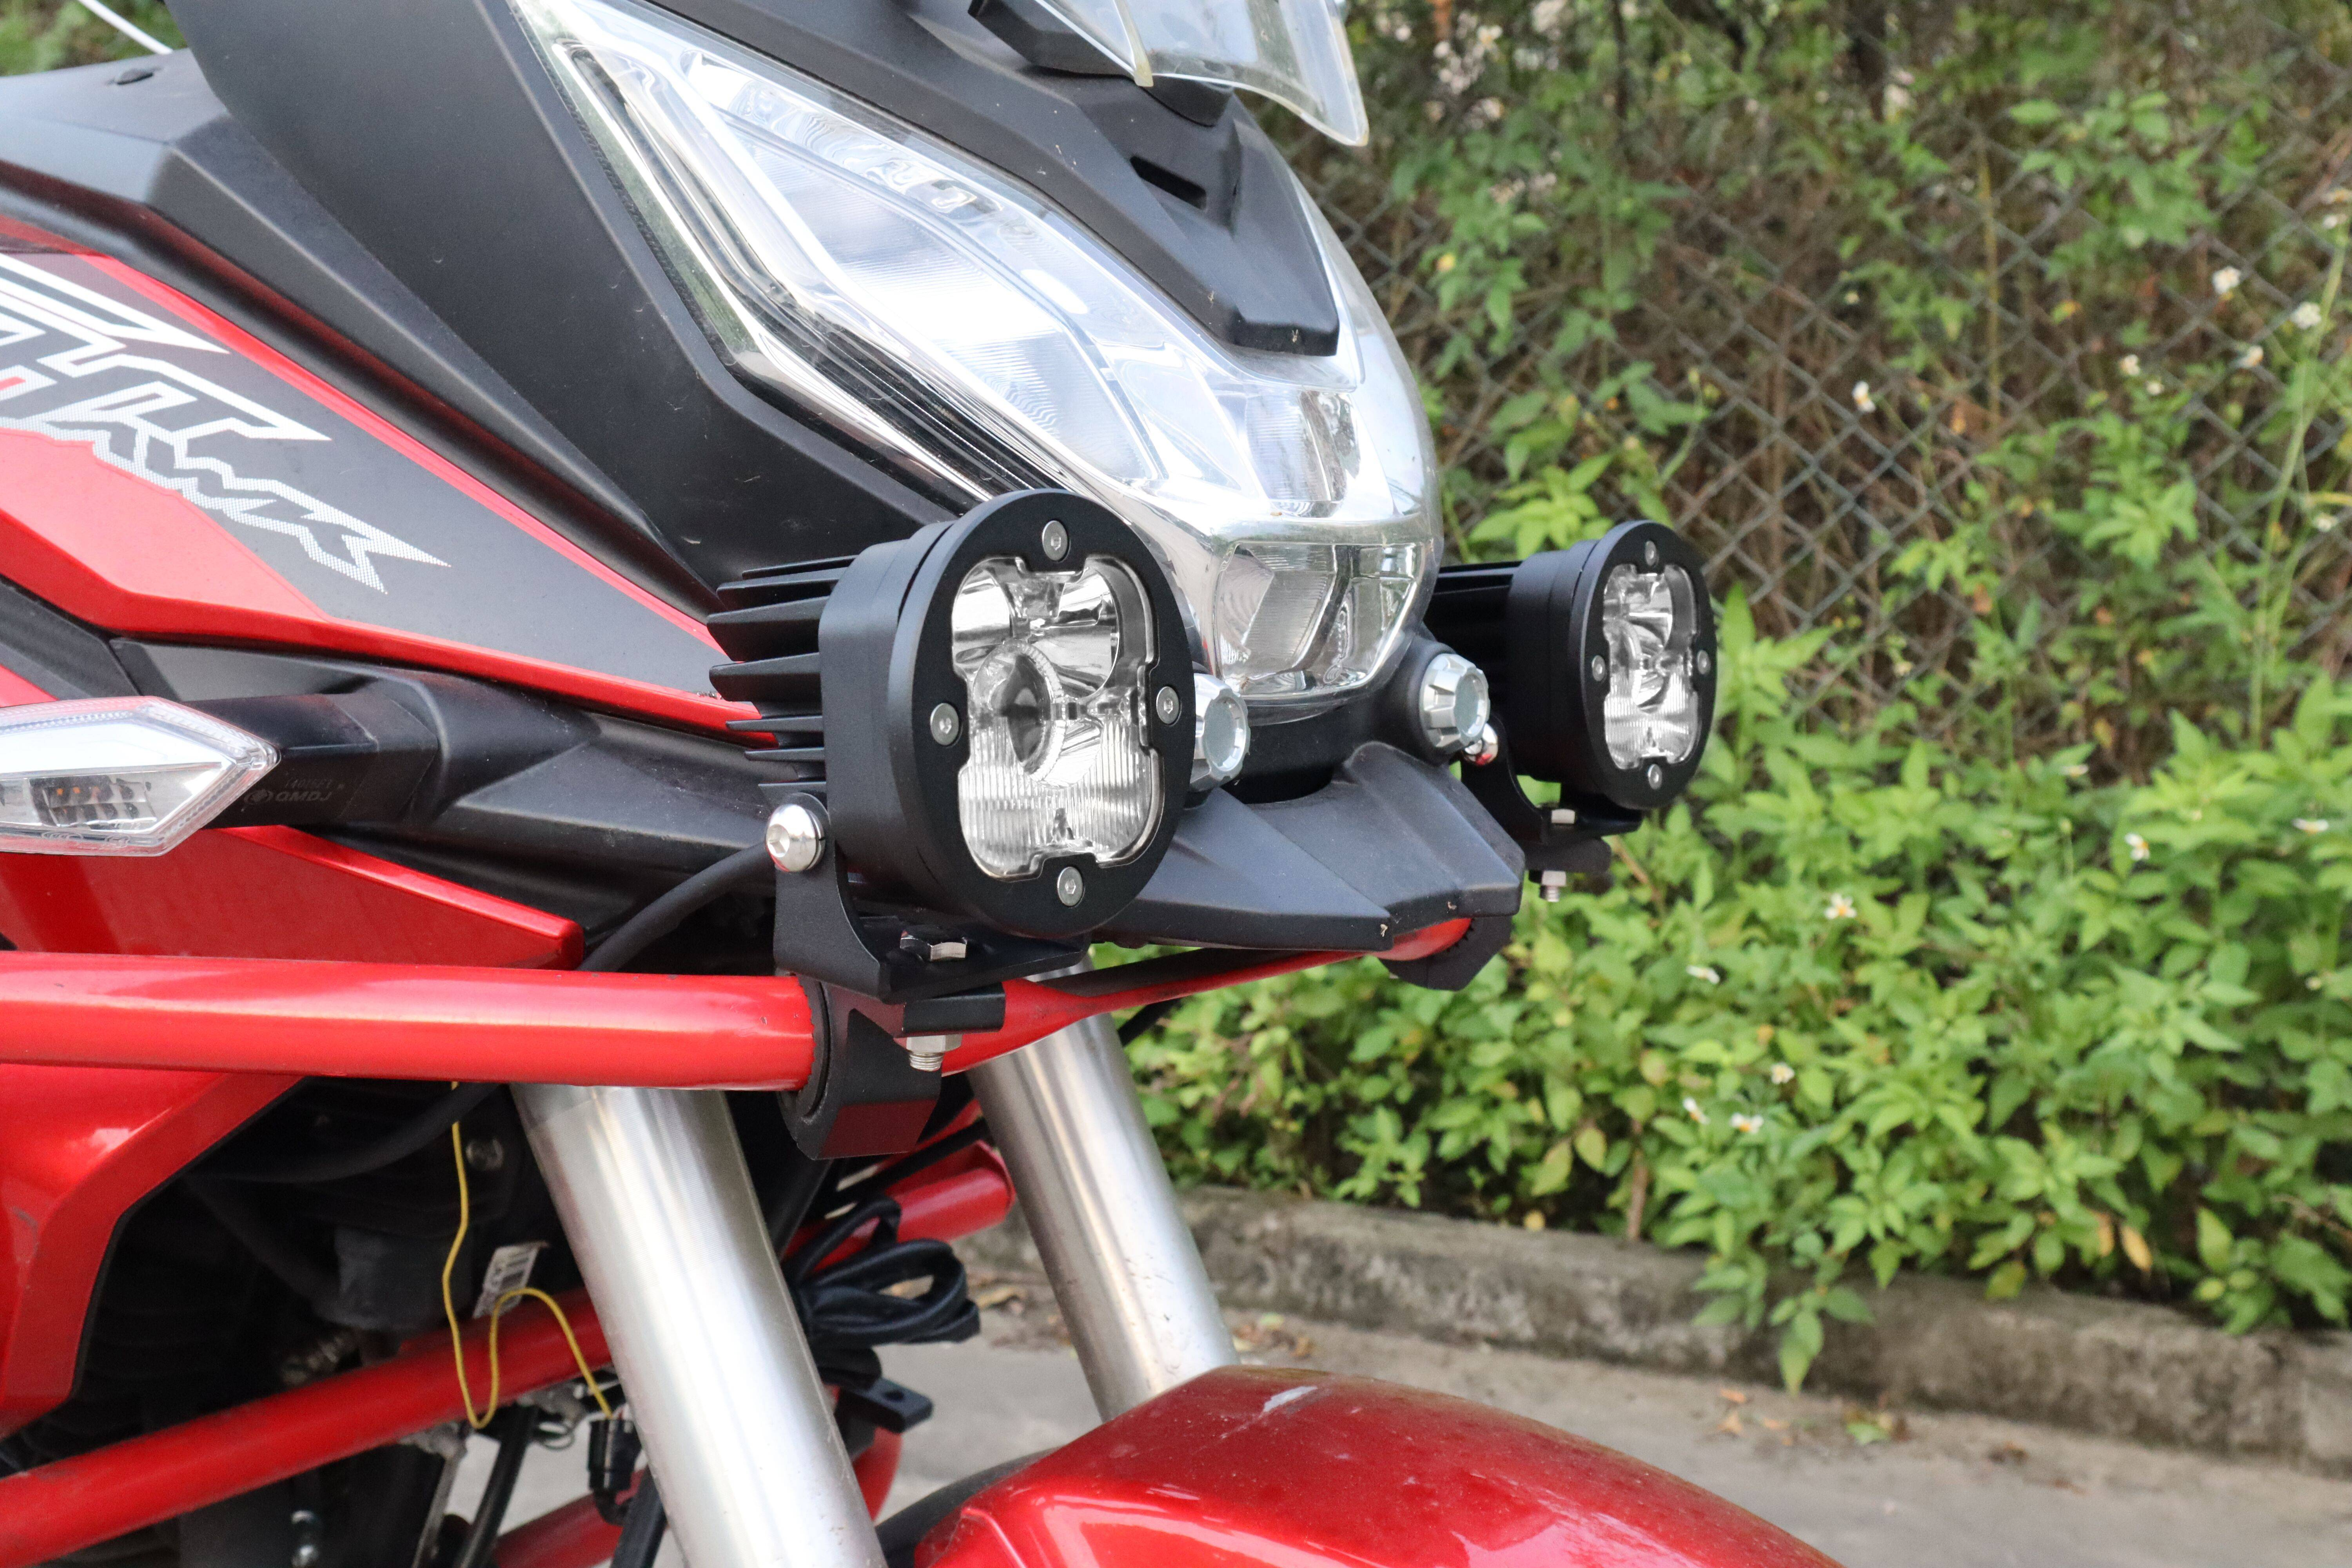 off road laser driving lights on motorcycle